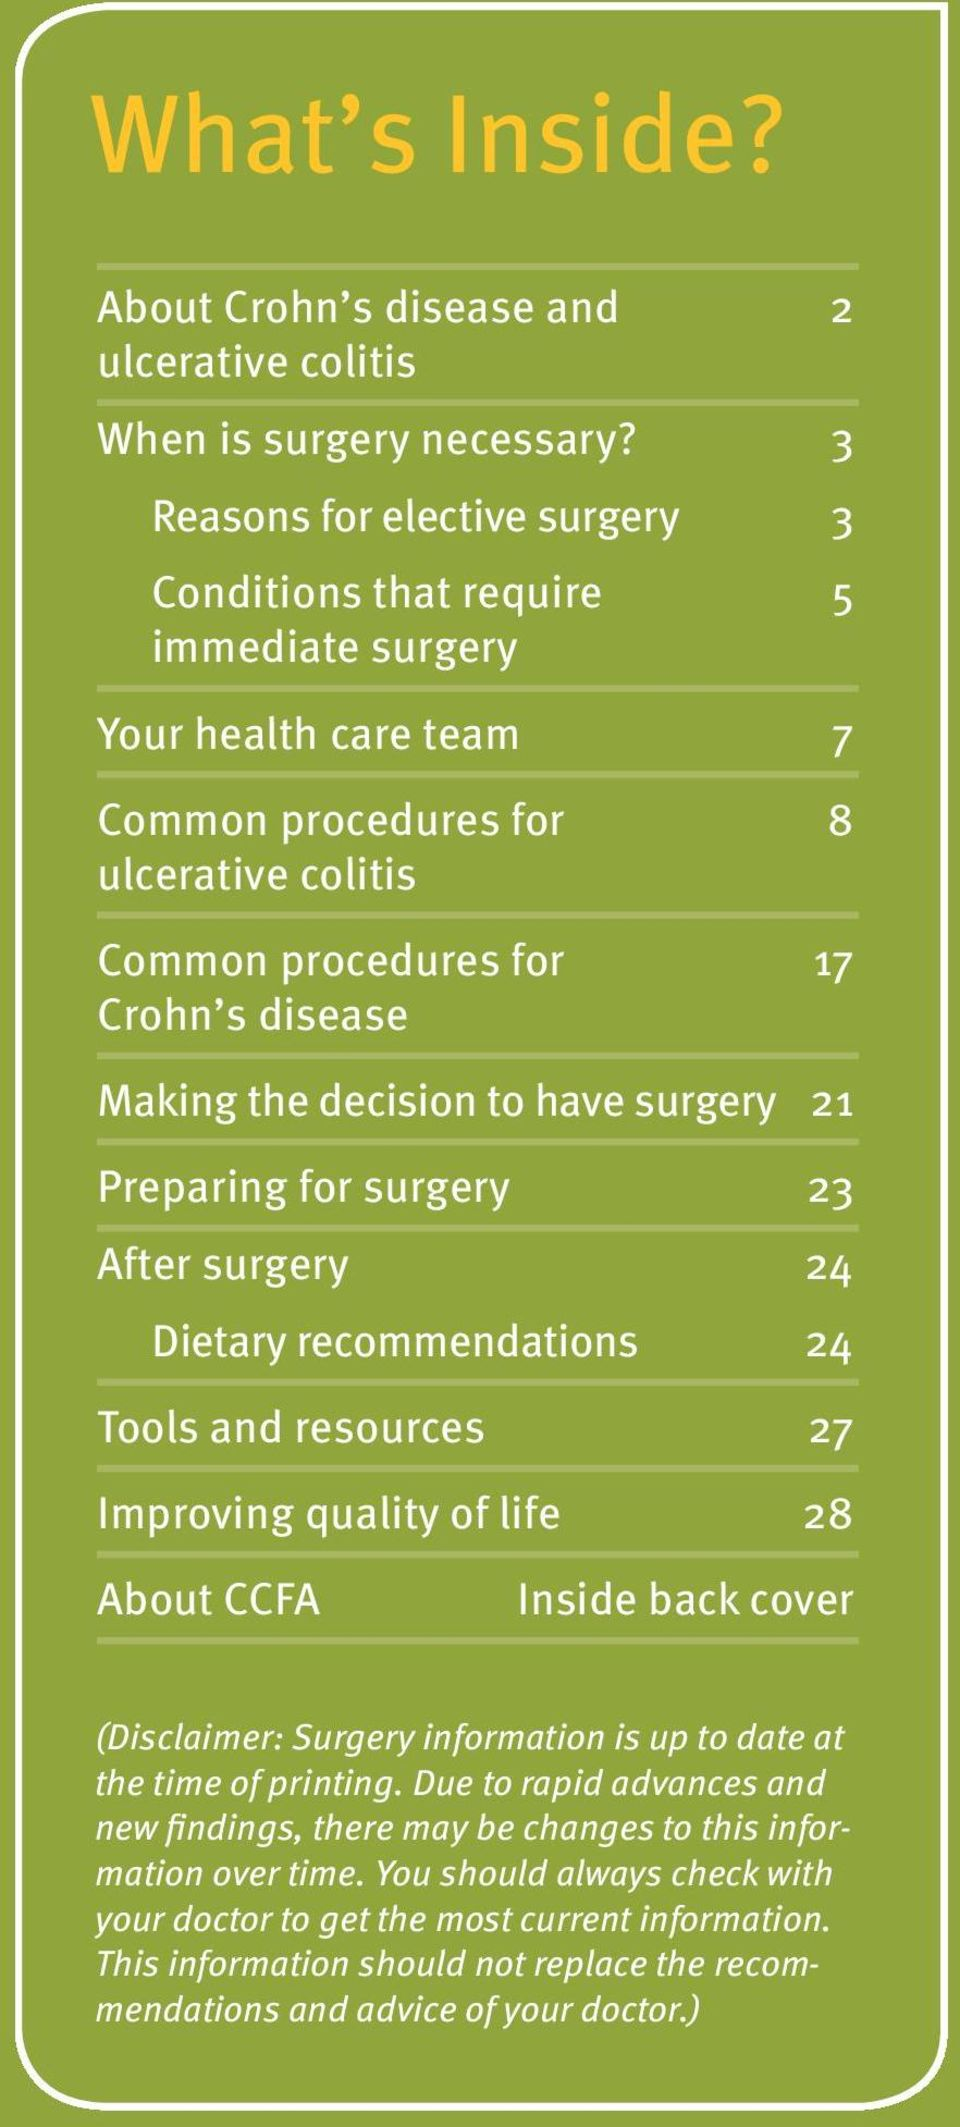 decision to have surgery 21 Preparing for surgery 23 After surgery 24 Dietary recommendations 24 Tools and resources 27 Improving quality of life 28 About CCFA Inside back cover (Disclaimer: